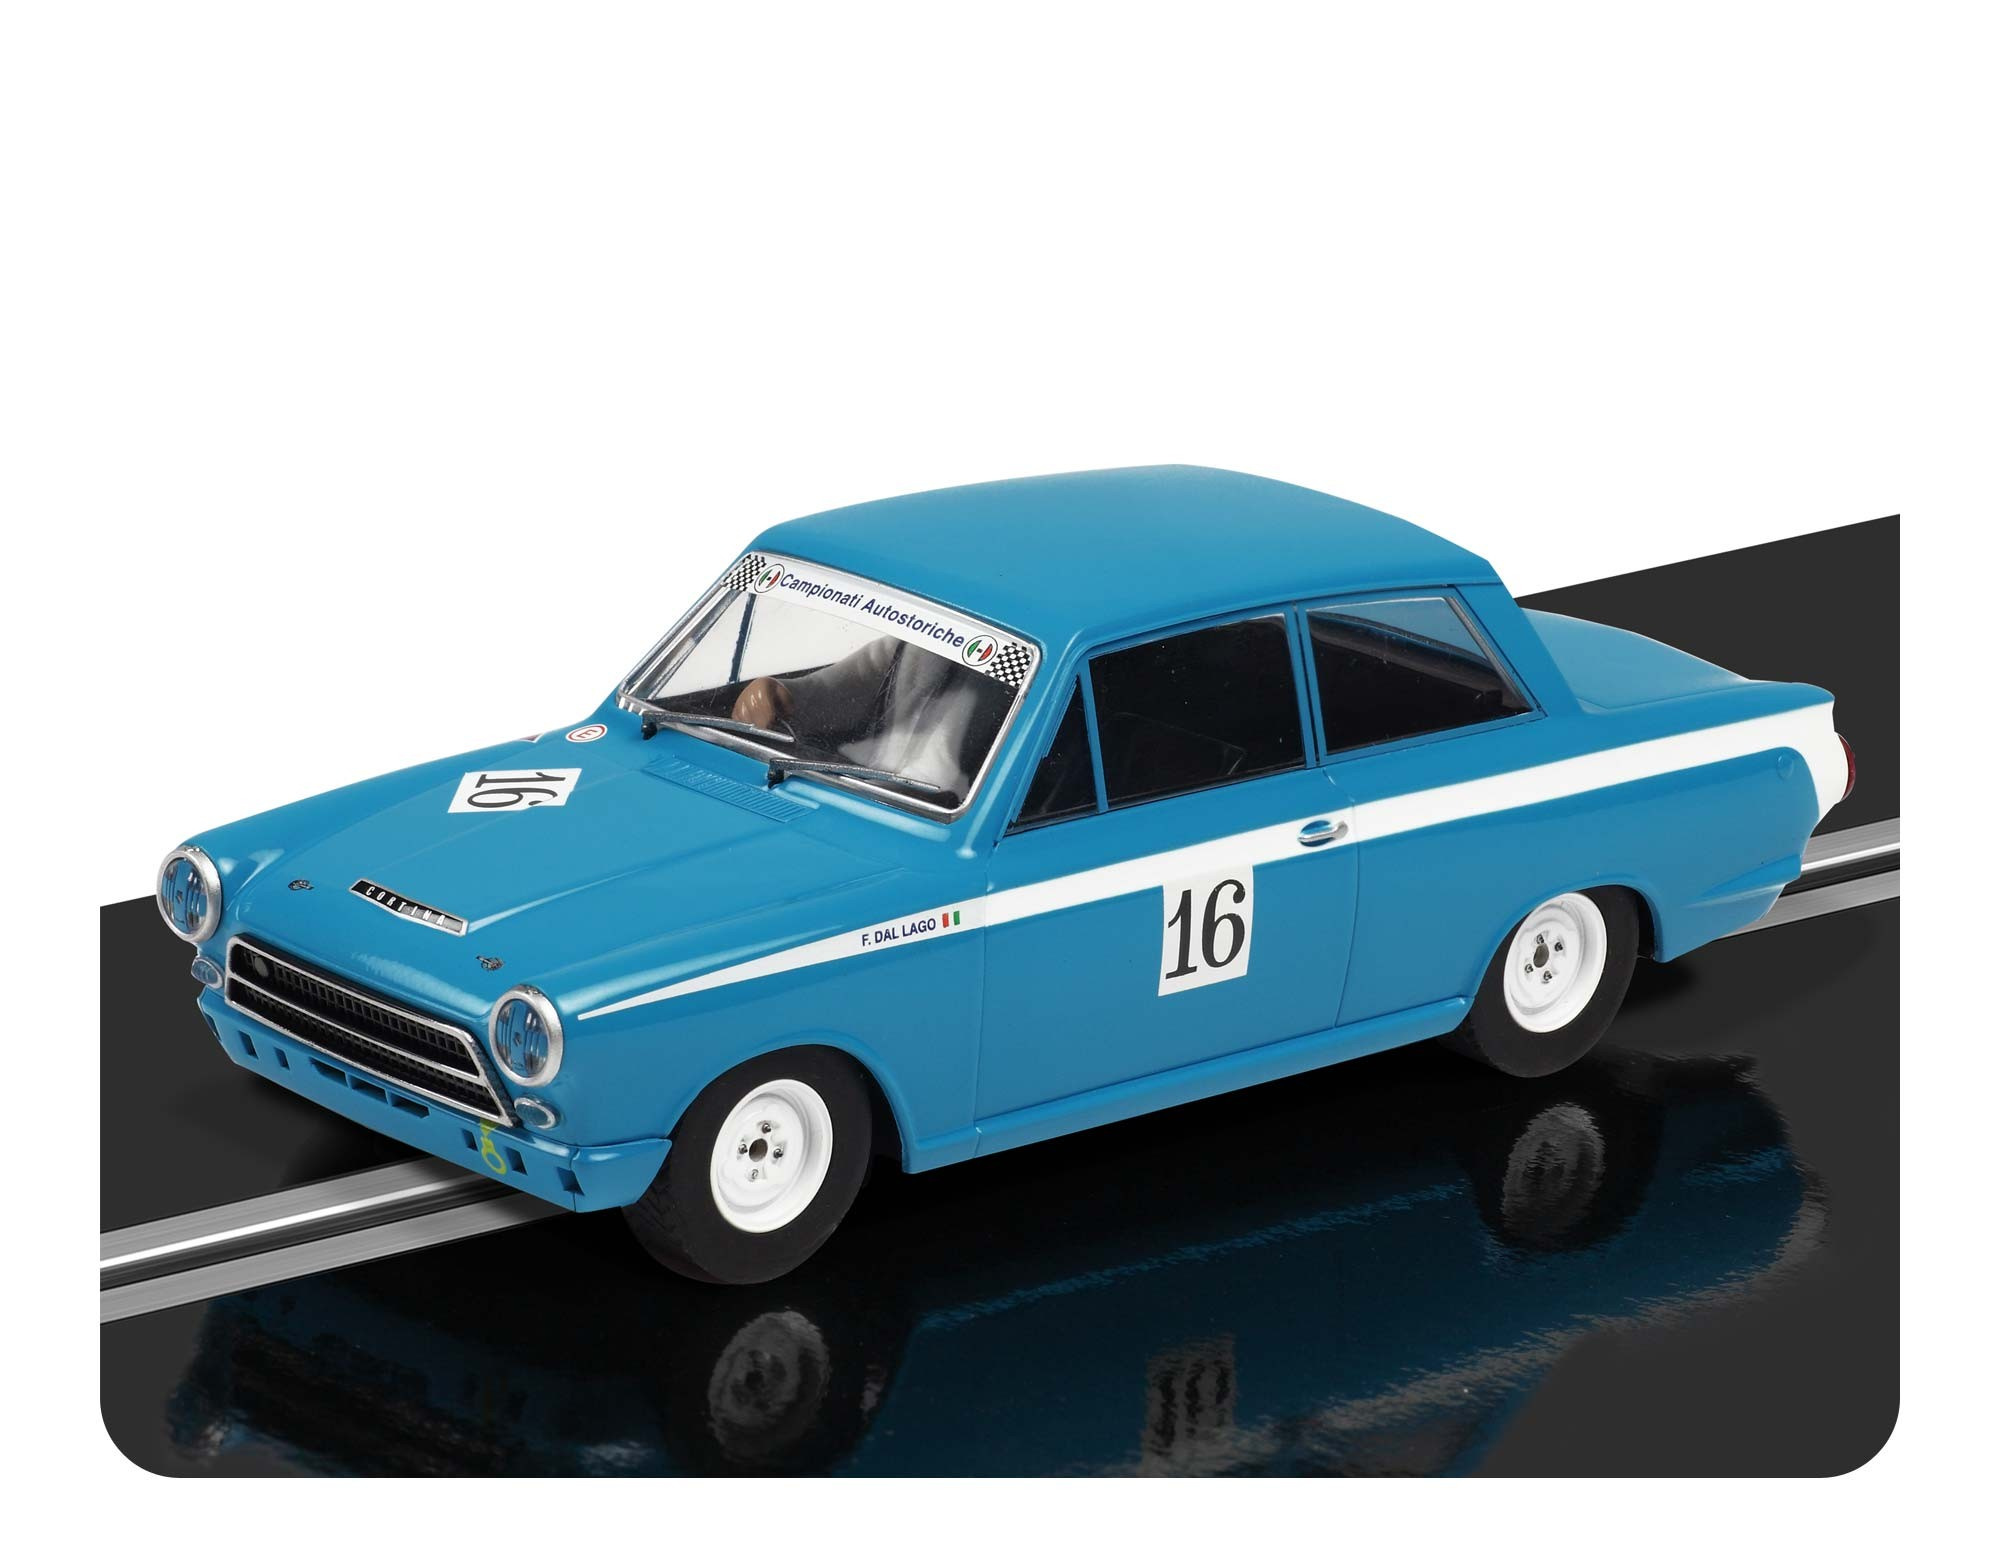 c3307-ford-lotus-cortina-track